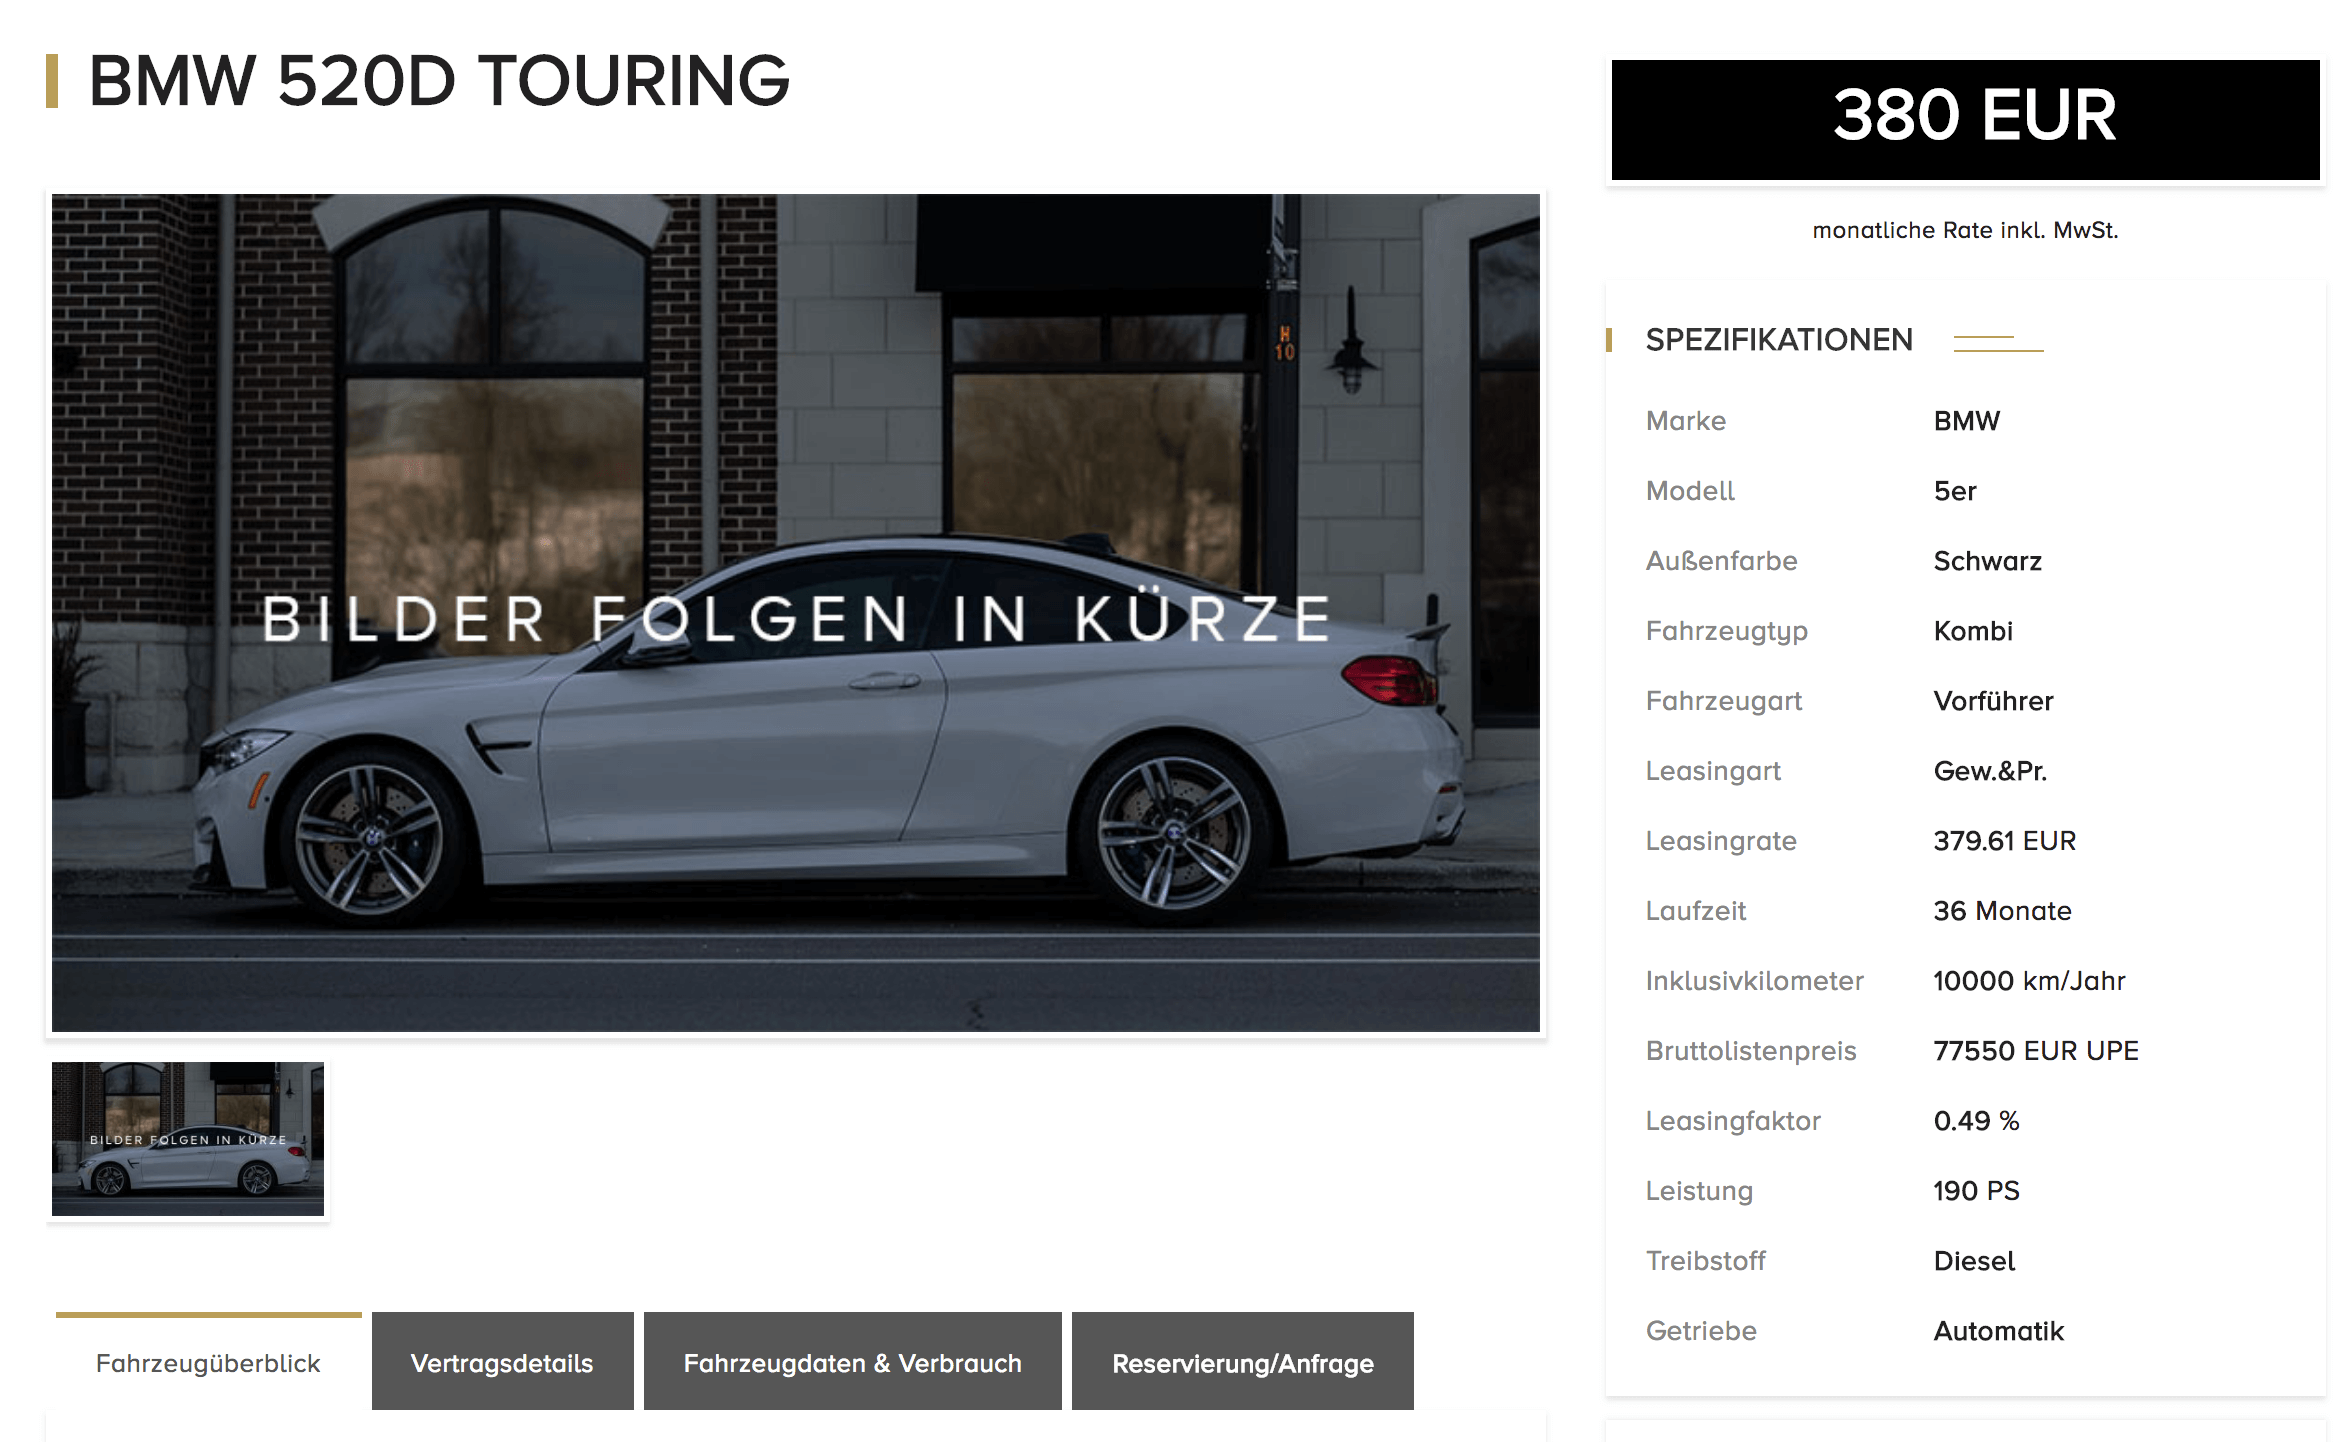 erneute bmw 5er aktion bei luxuryleasing junge gebrauchte. Black Bedroom Furniture Sets. Home Design Ideas